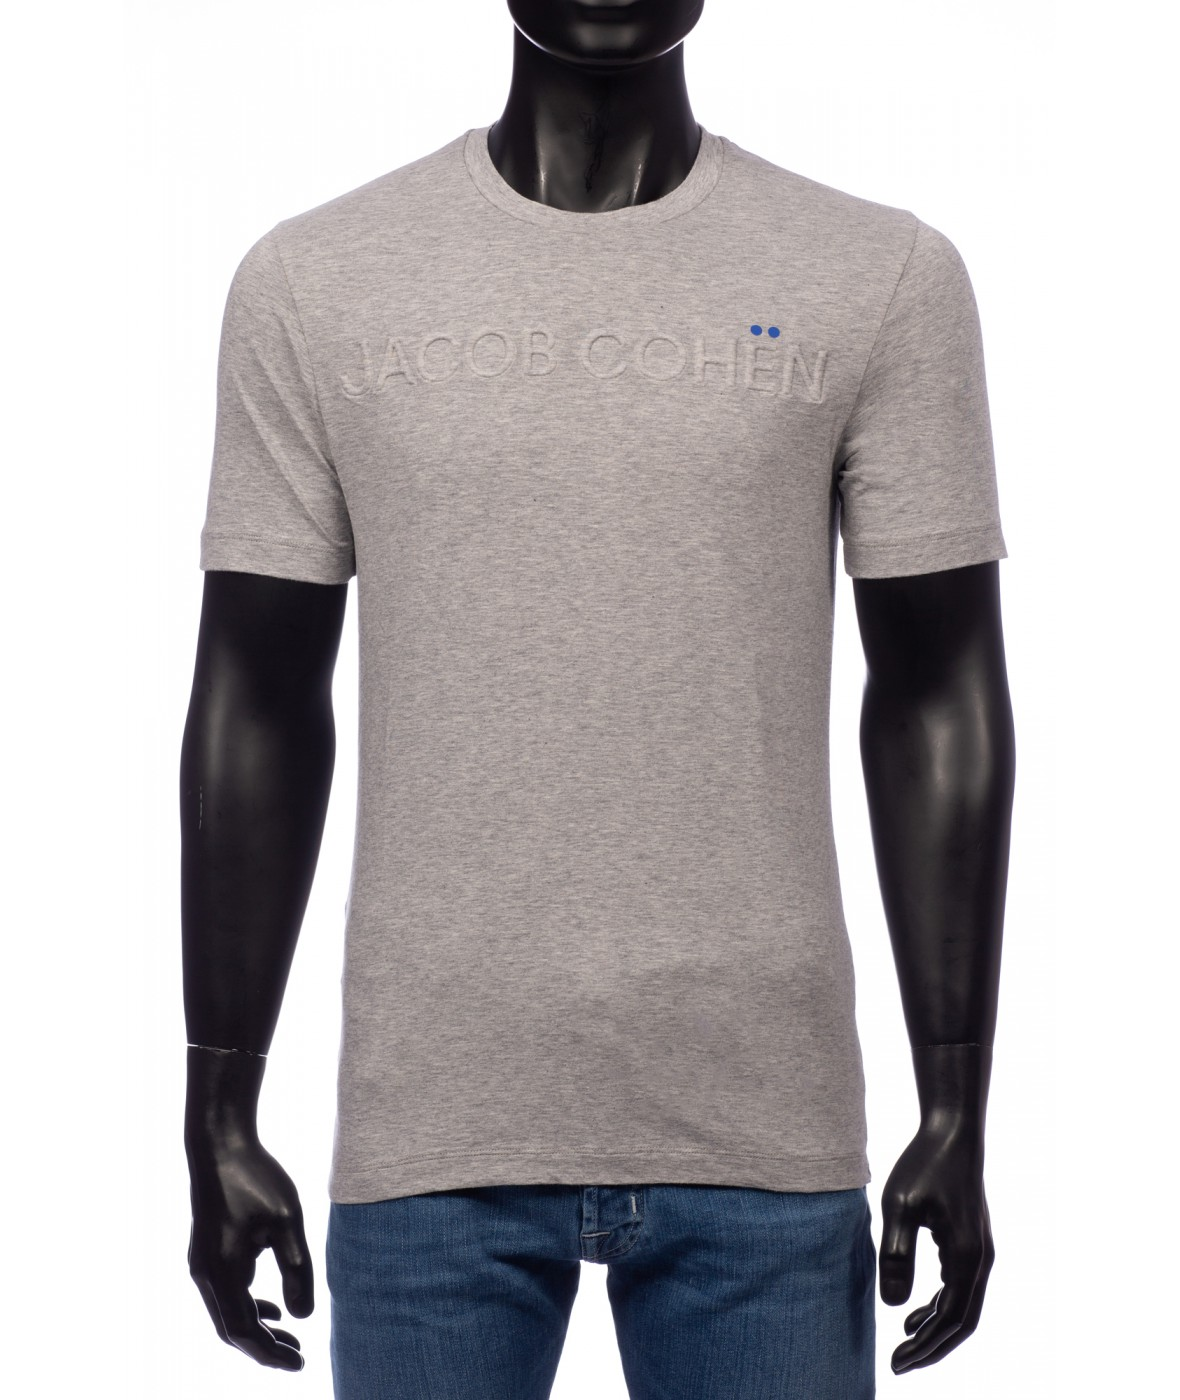 Jacob Cohen T-Shirt Grau (32333)